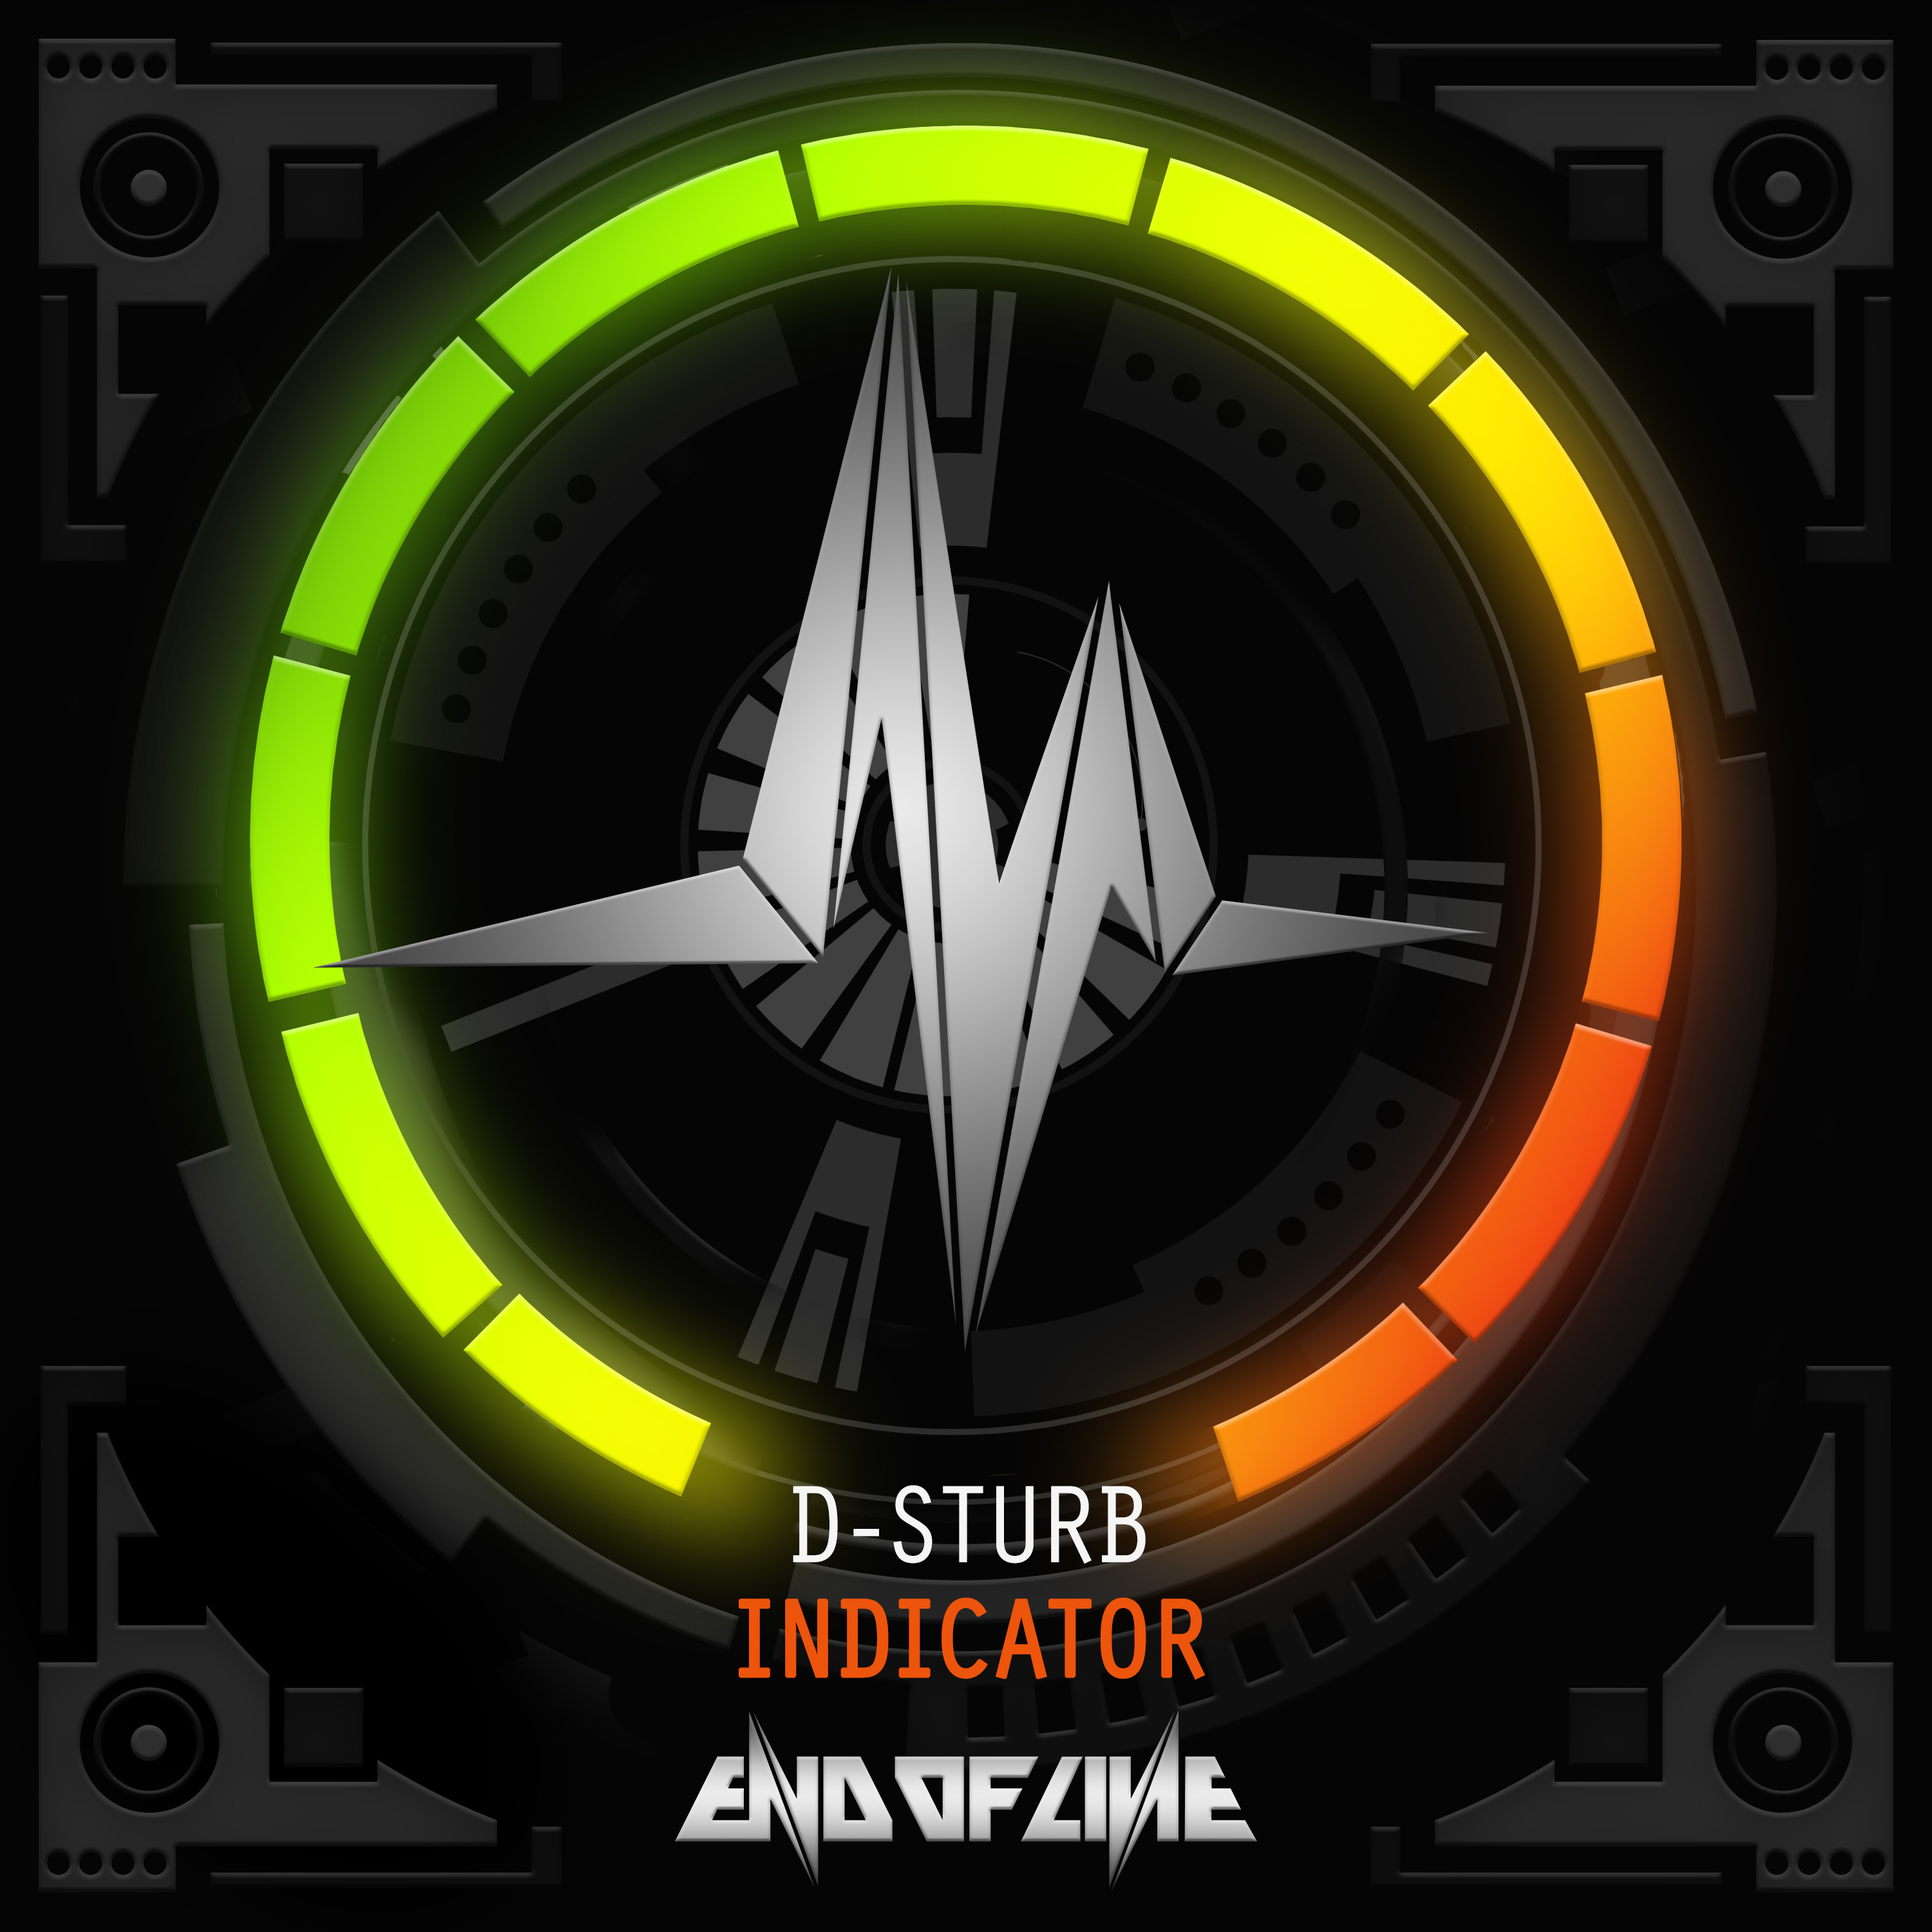 D-Sturb - Indicator (Official Indicator 2016 Anthem) [END OF LINE RECORDINGS] EOL031